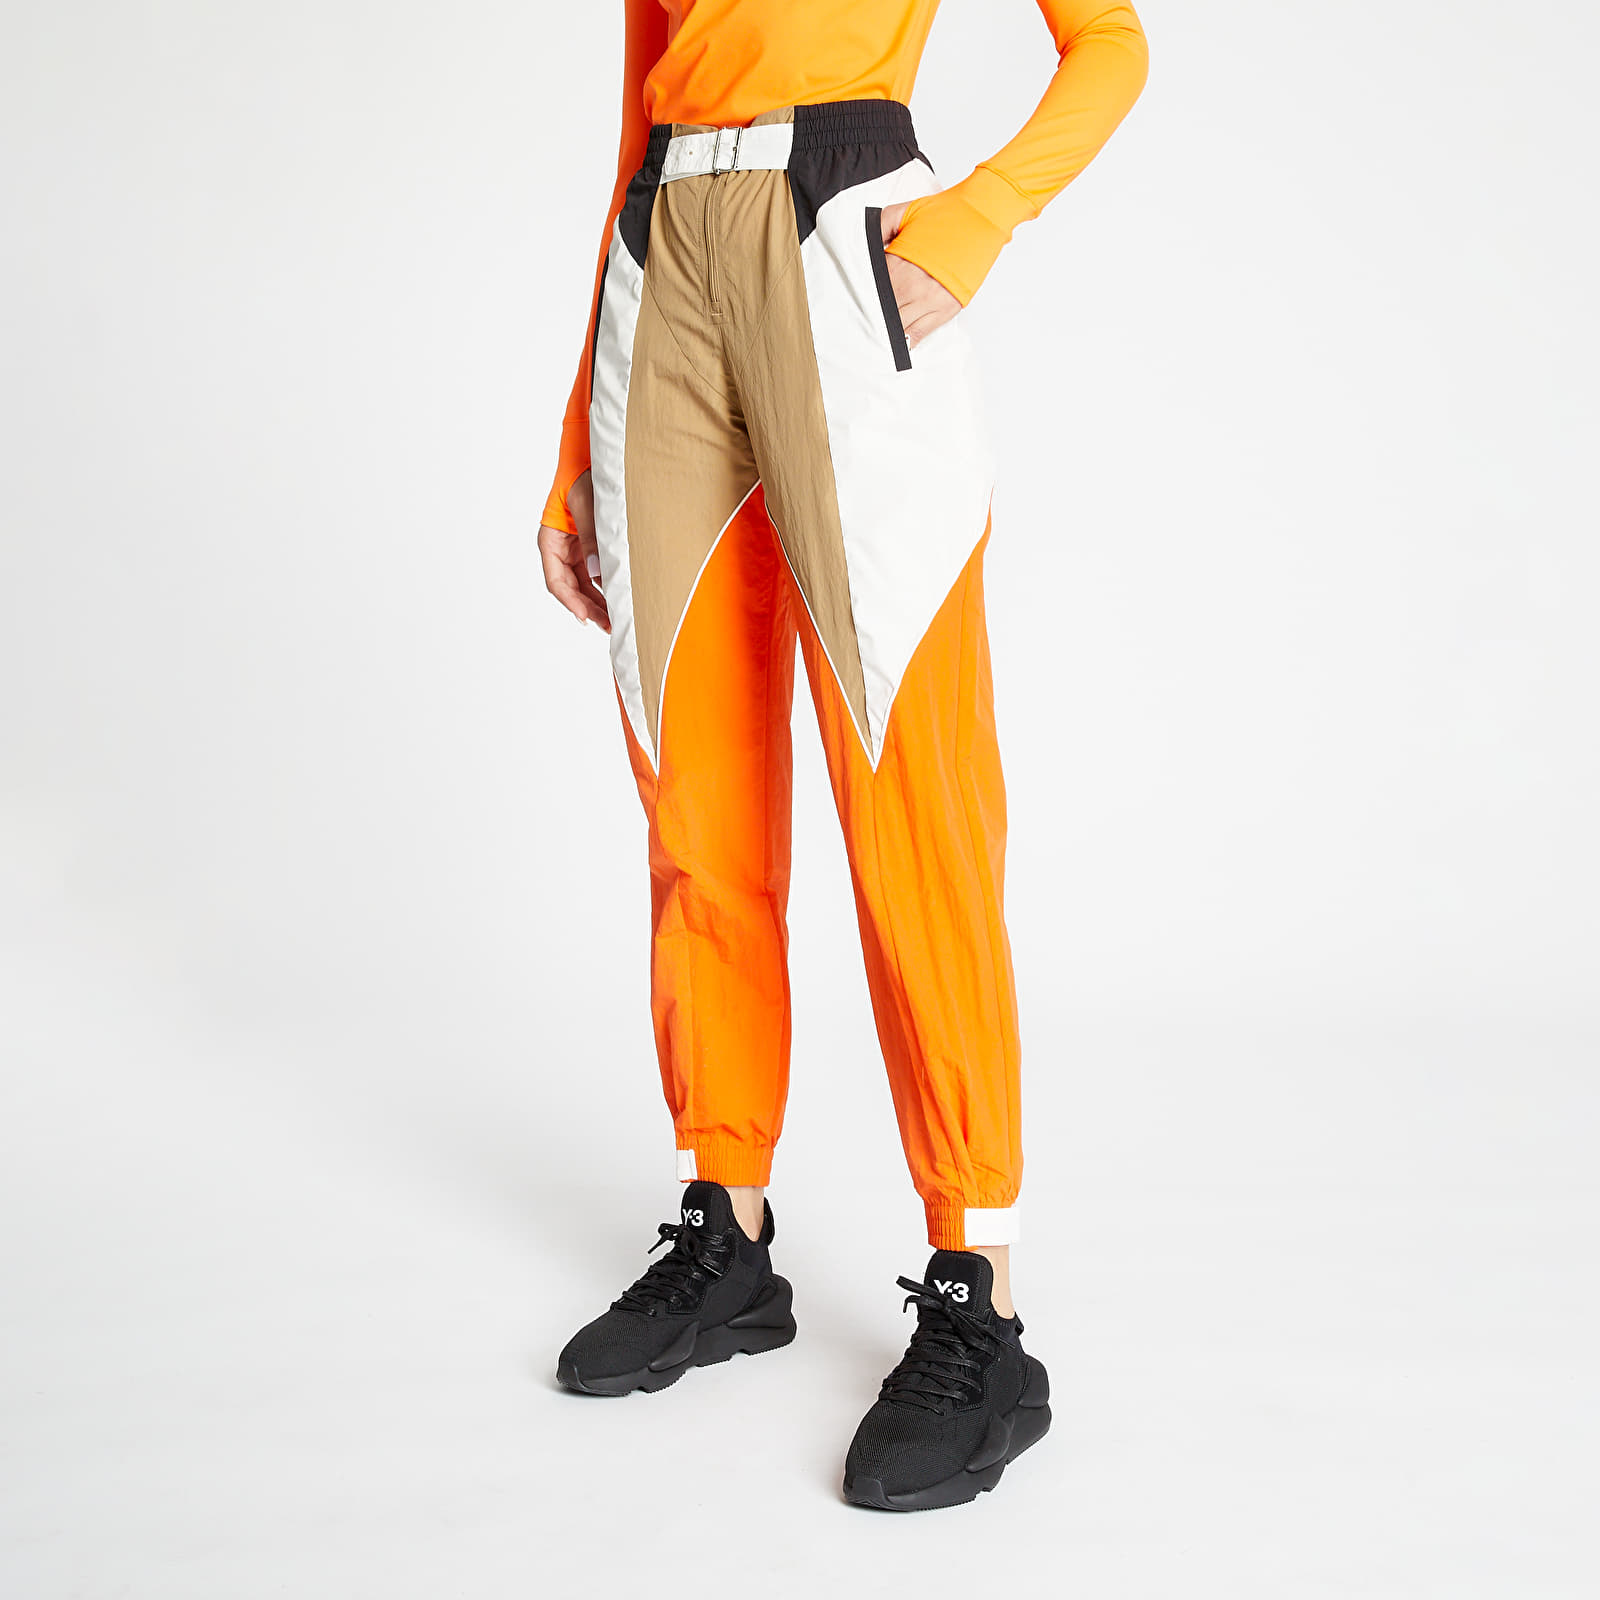 adidas Pants Chalk White/ Energy Orange/ Cardboard